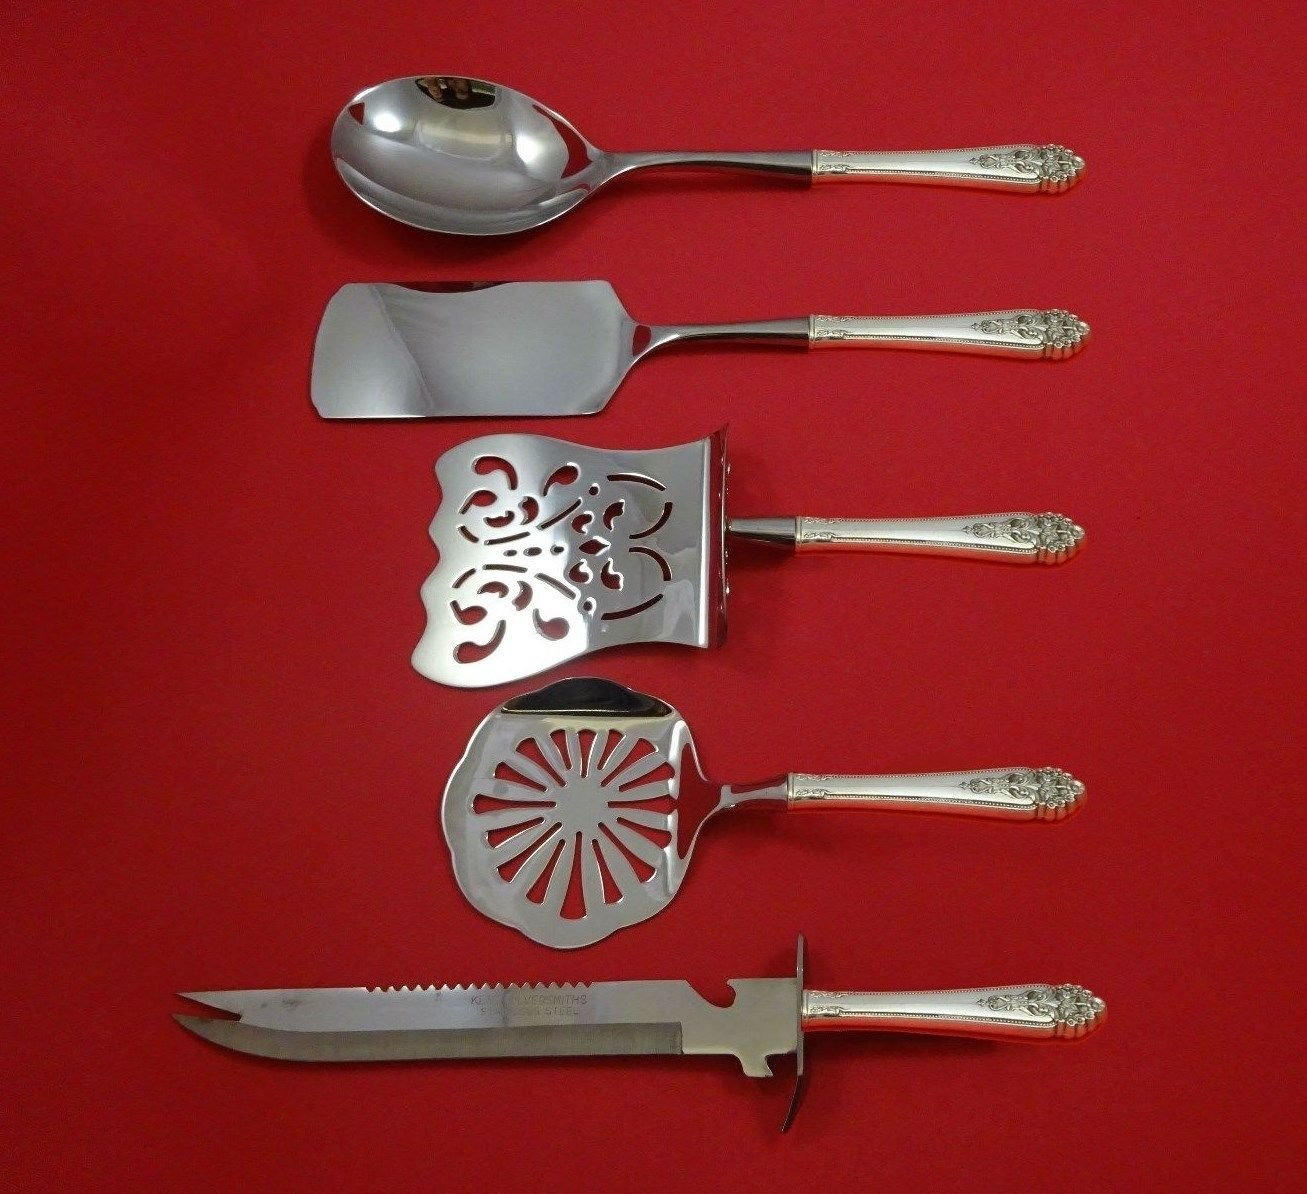 Queen's Lace by International Sterling Silver Brunch Serving Set 5pc Custom